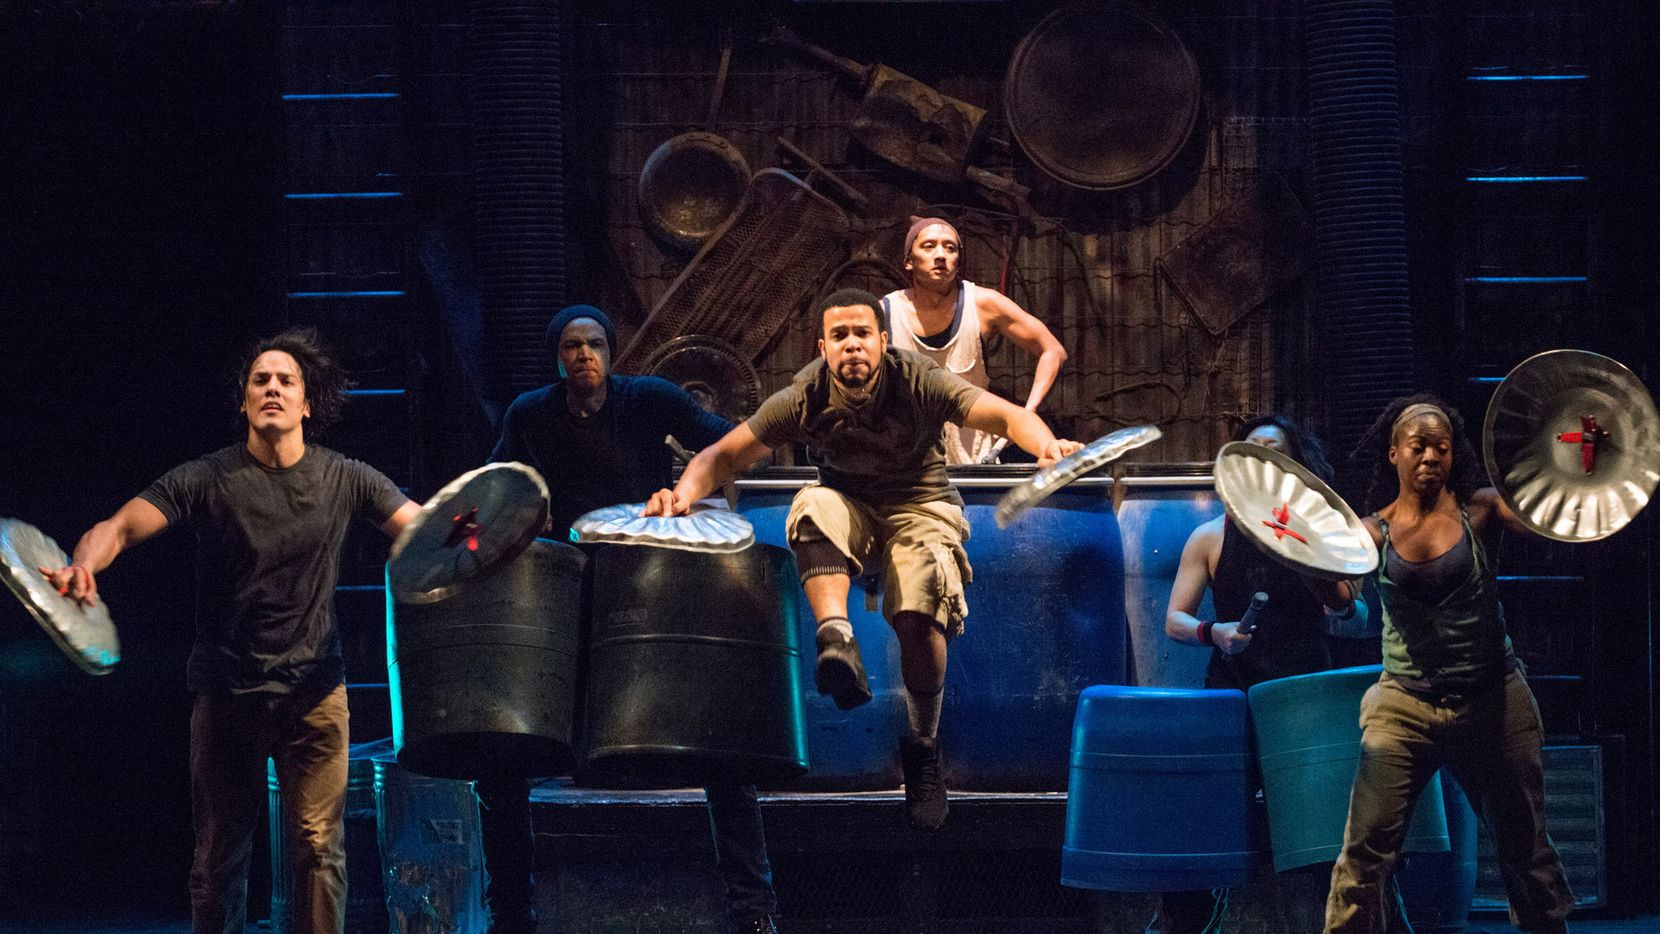 """STOMP"" will be presented by Dallas Summer Musicals Feb. 14-19 at Fair Park Music Hall."